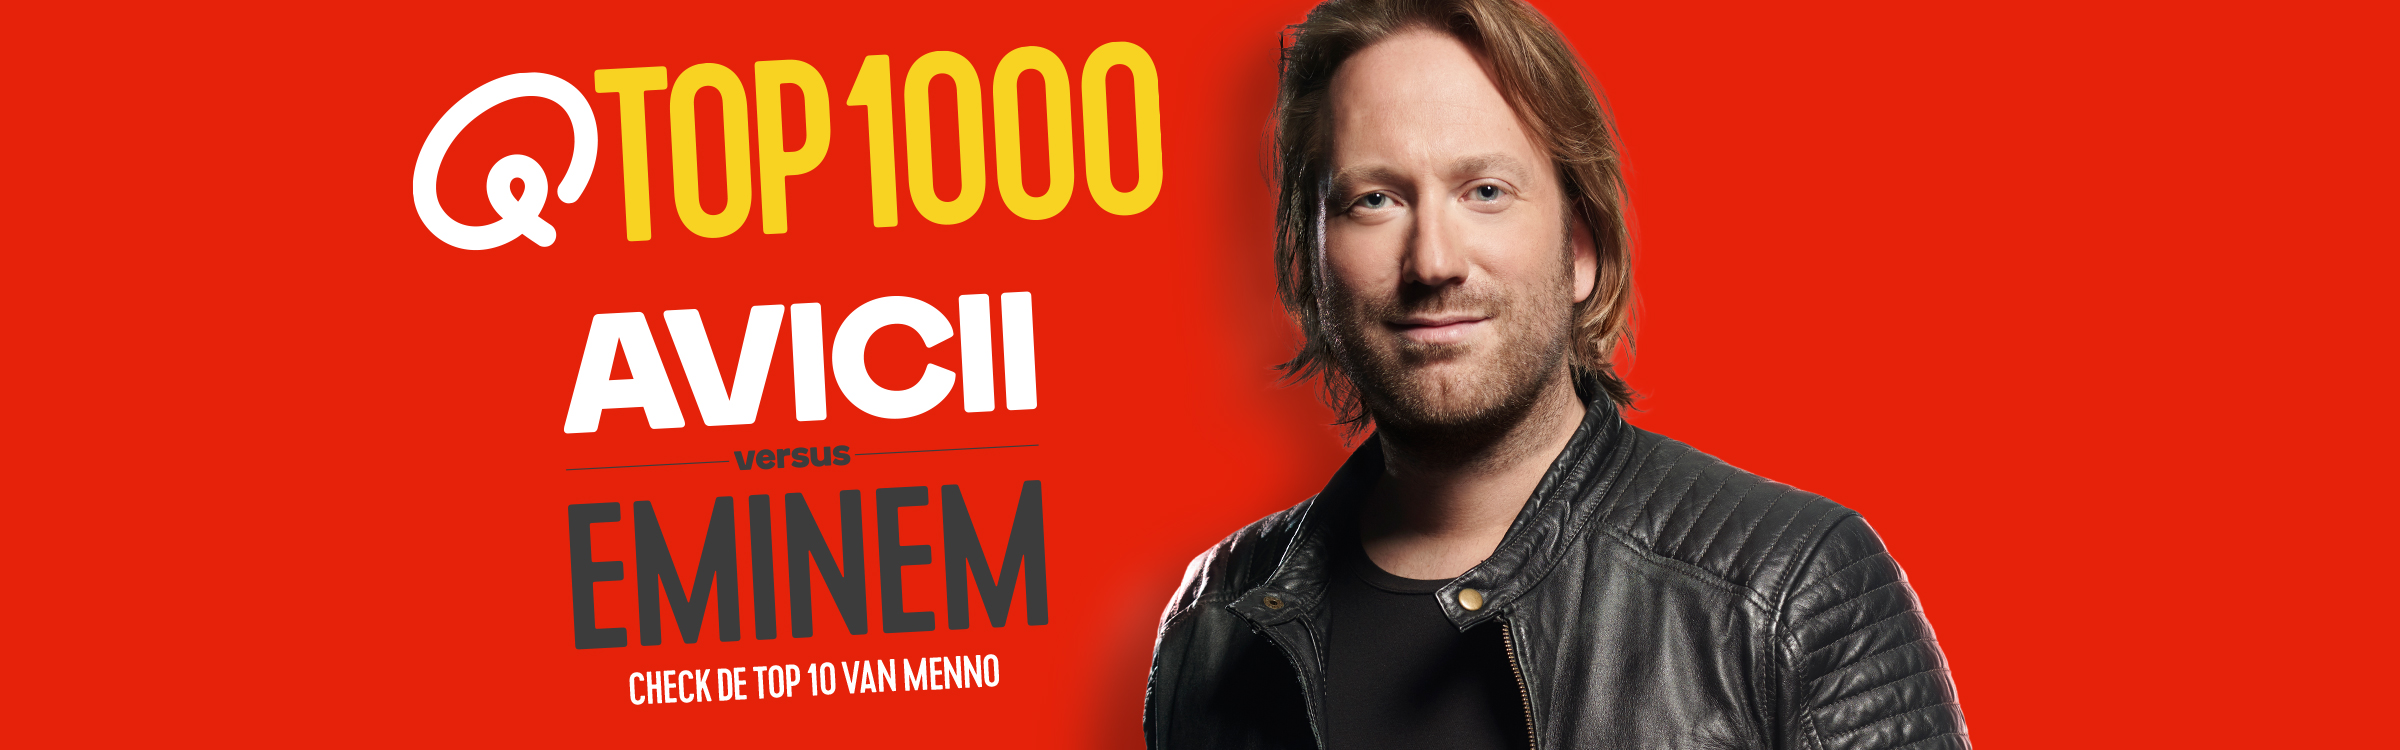 Qmusic actionheader top1000 djs menno